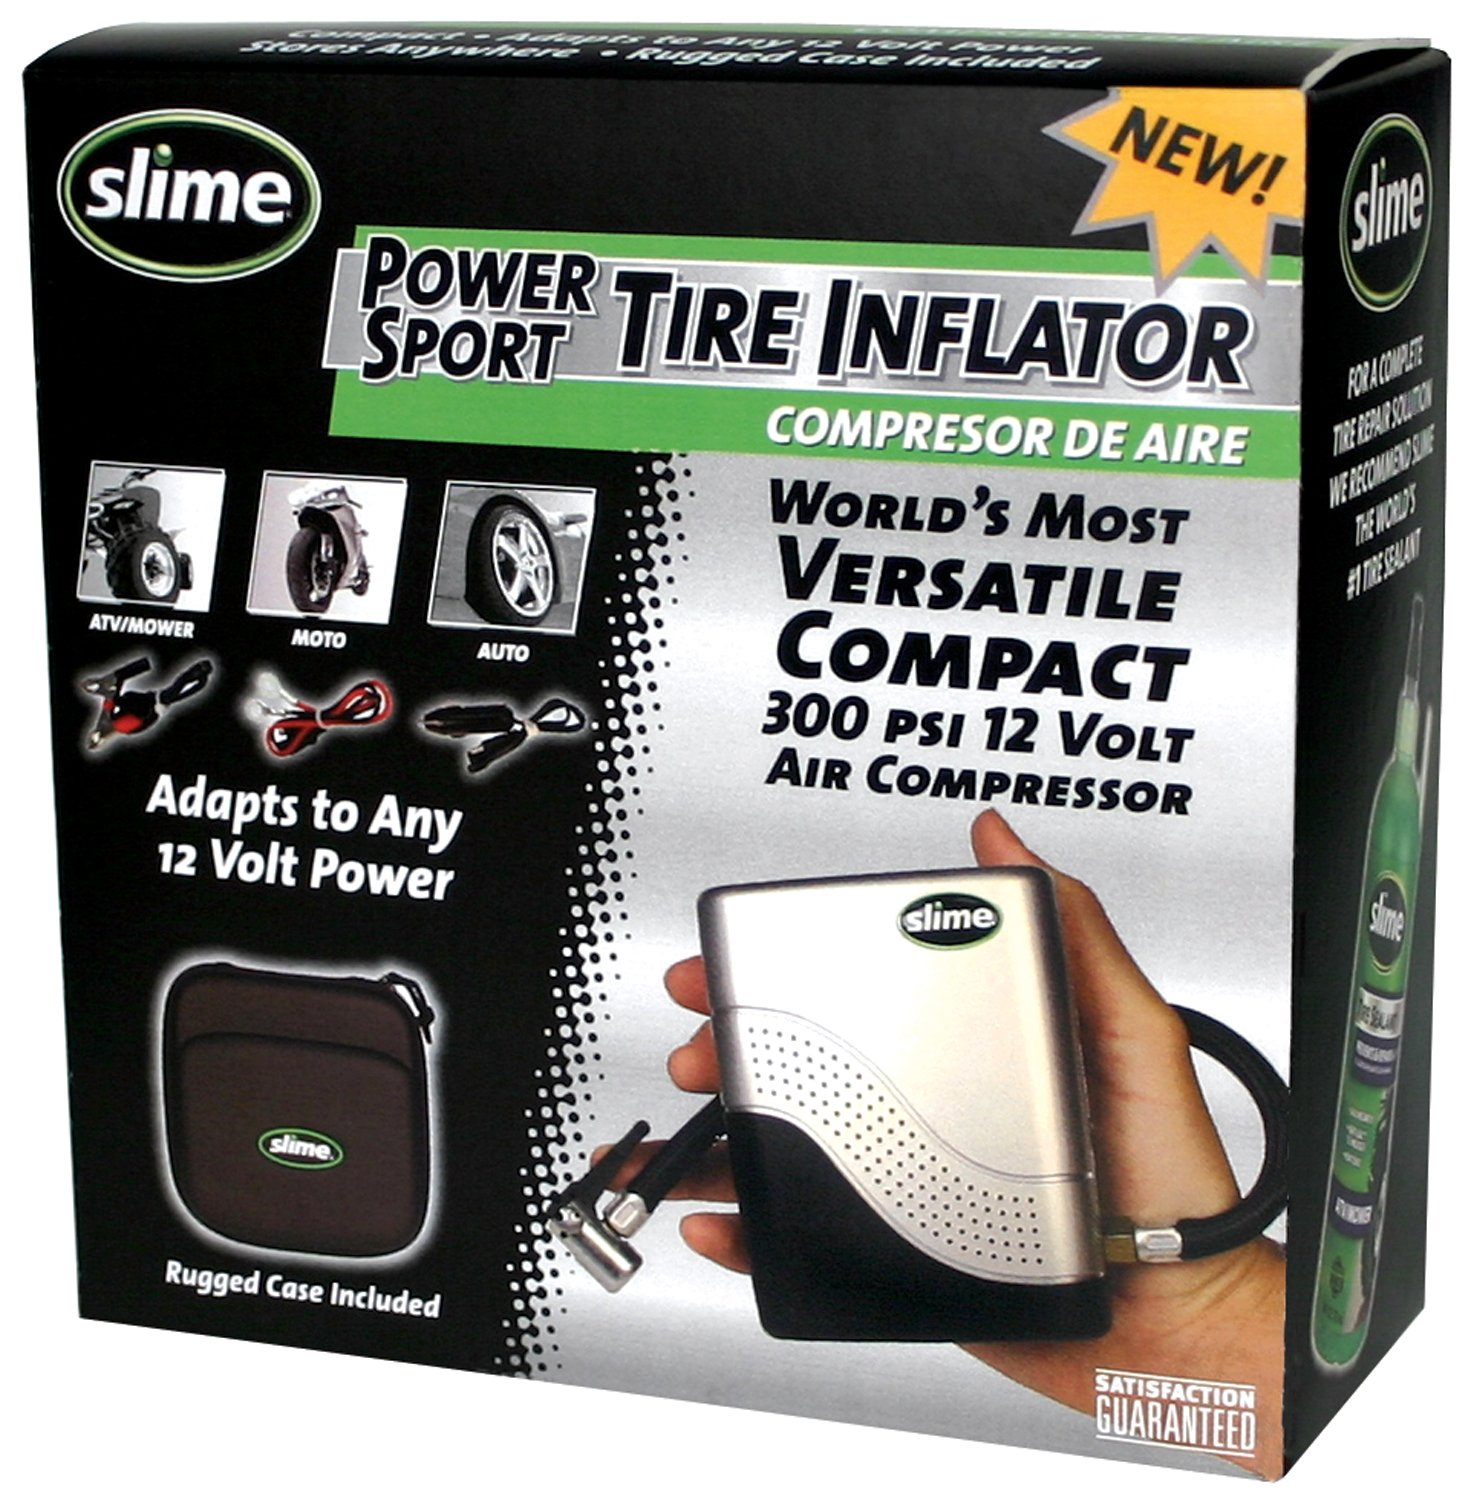 Slime 40001 Motorcycle Tire Inflator product image